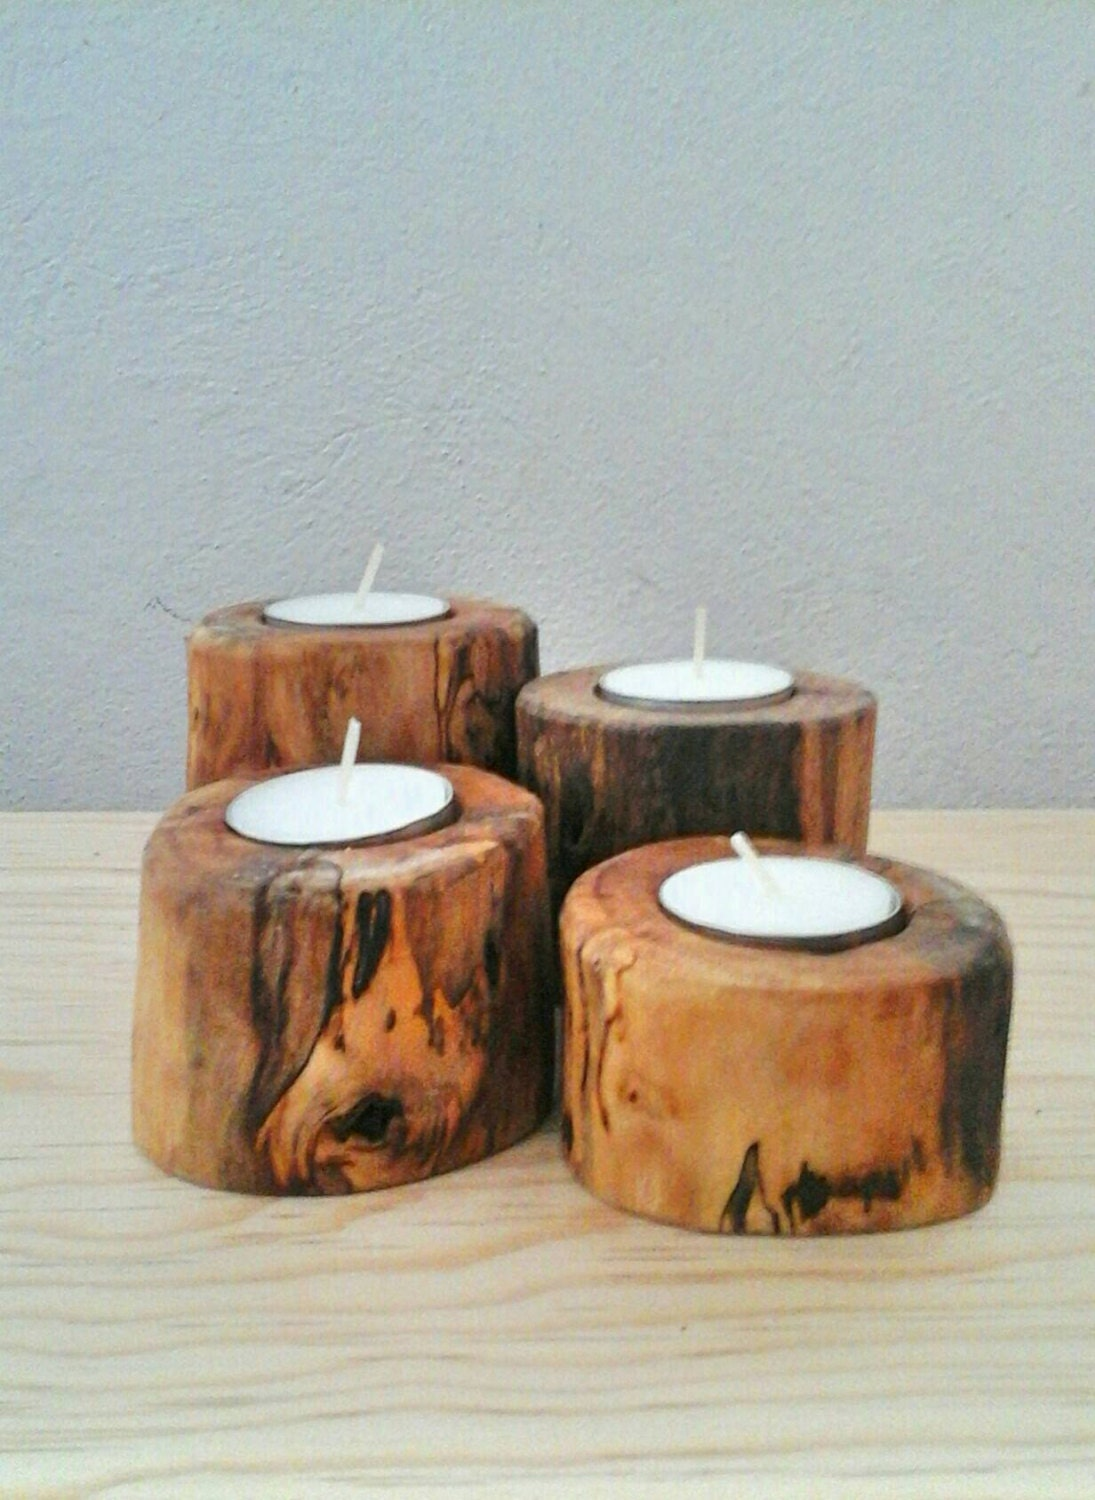 Spalted Wood Candle Holders Wooden Tea Light Holder Set Of